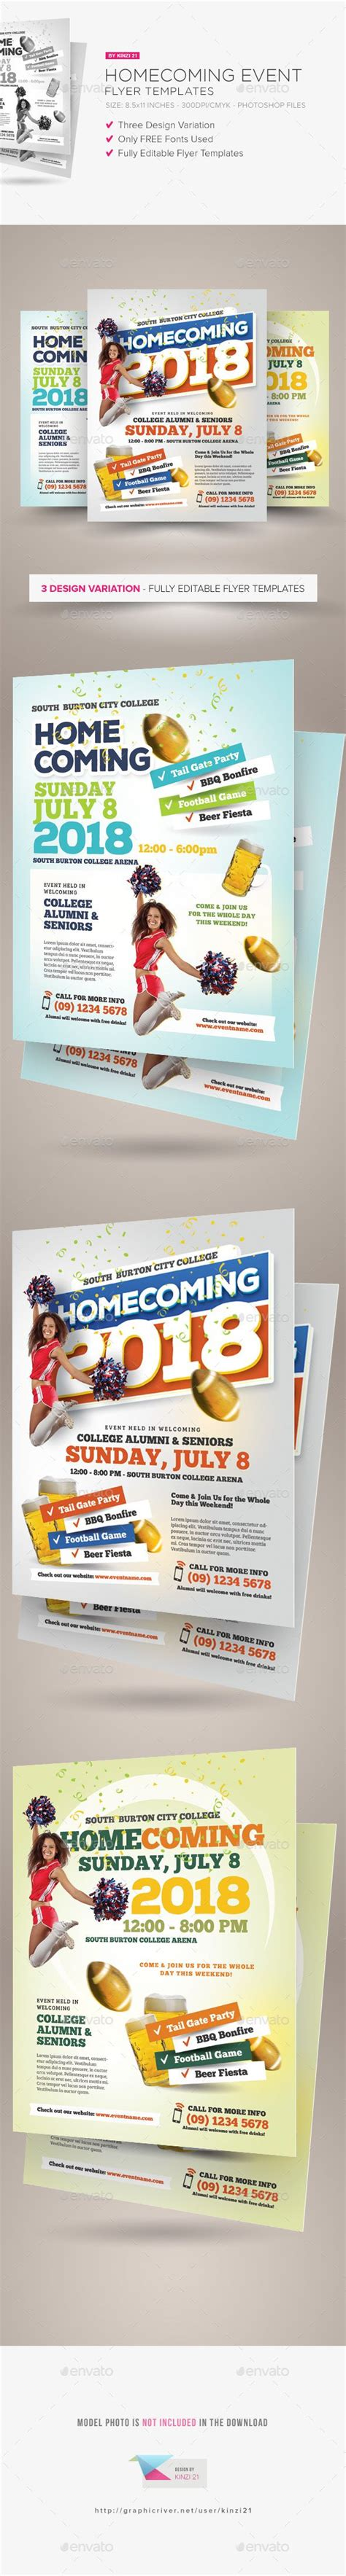 Homecoming Event Flyer Templates Event Flyer Templates Event Flyers And Flyer Template Homecoming Flyer Template